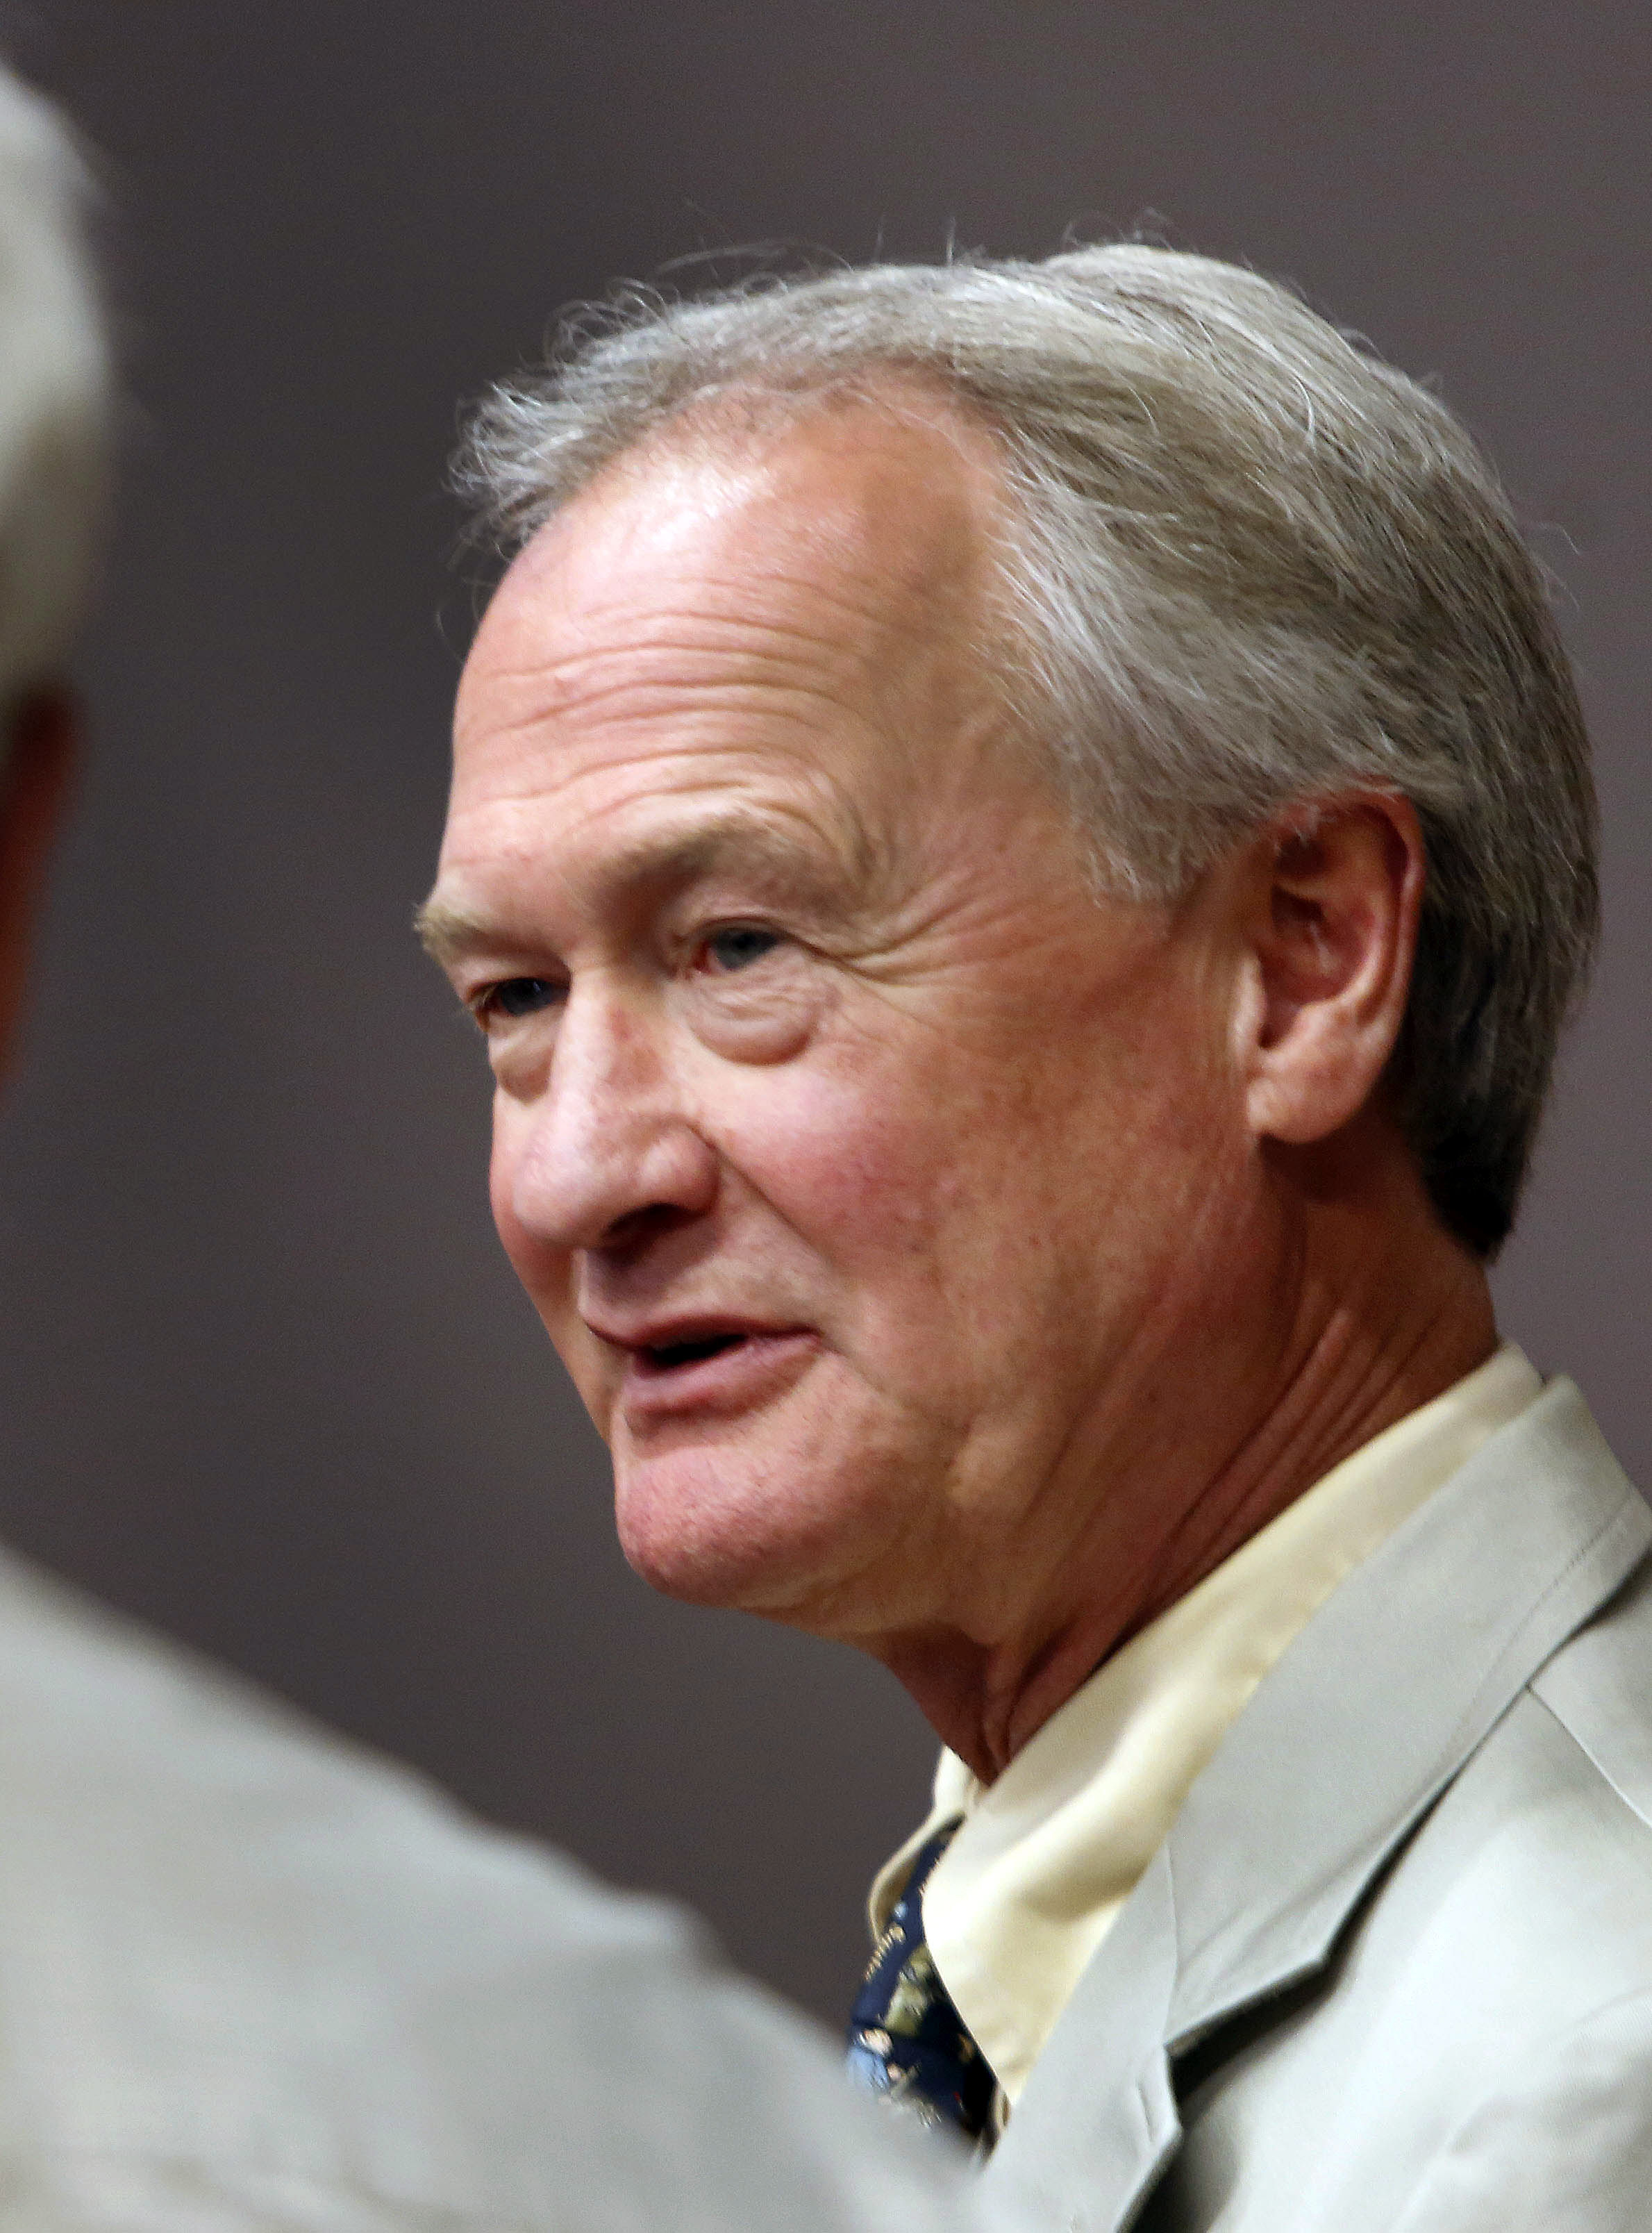 Democratic presidential candidate former Rhode Island Gov. Lincoln Chafee meets with voters during a campaign stop in Laconia, N.H.